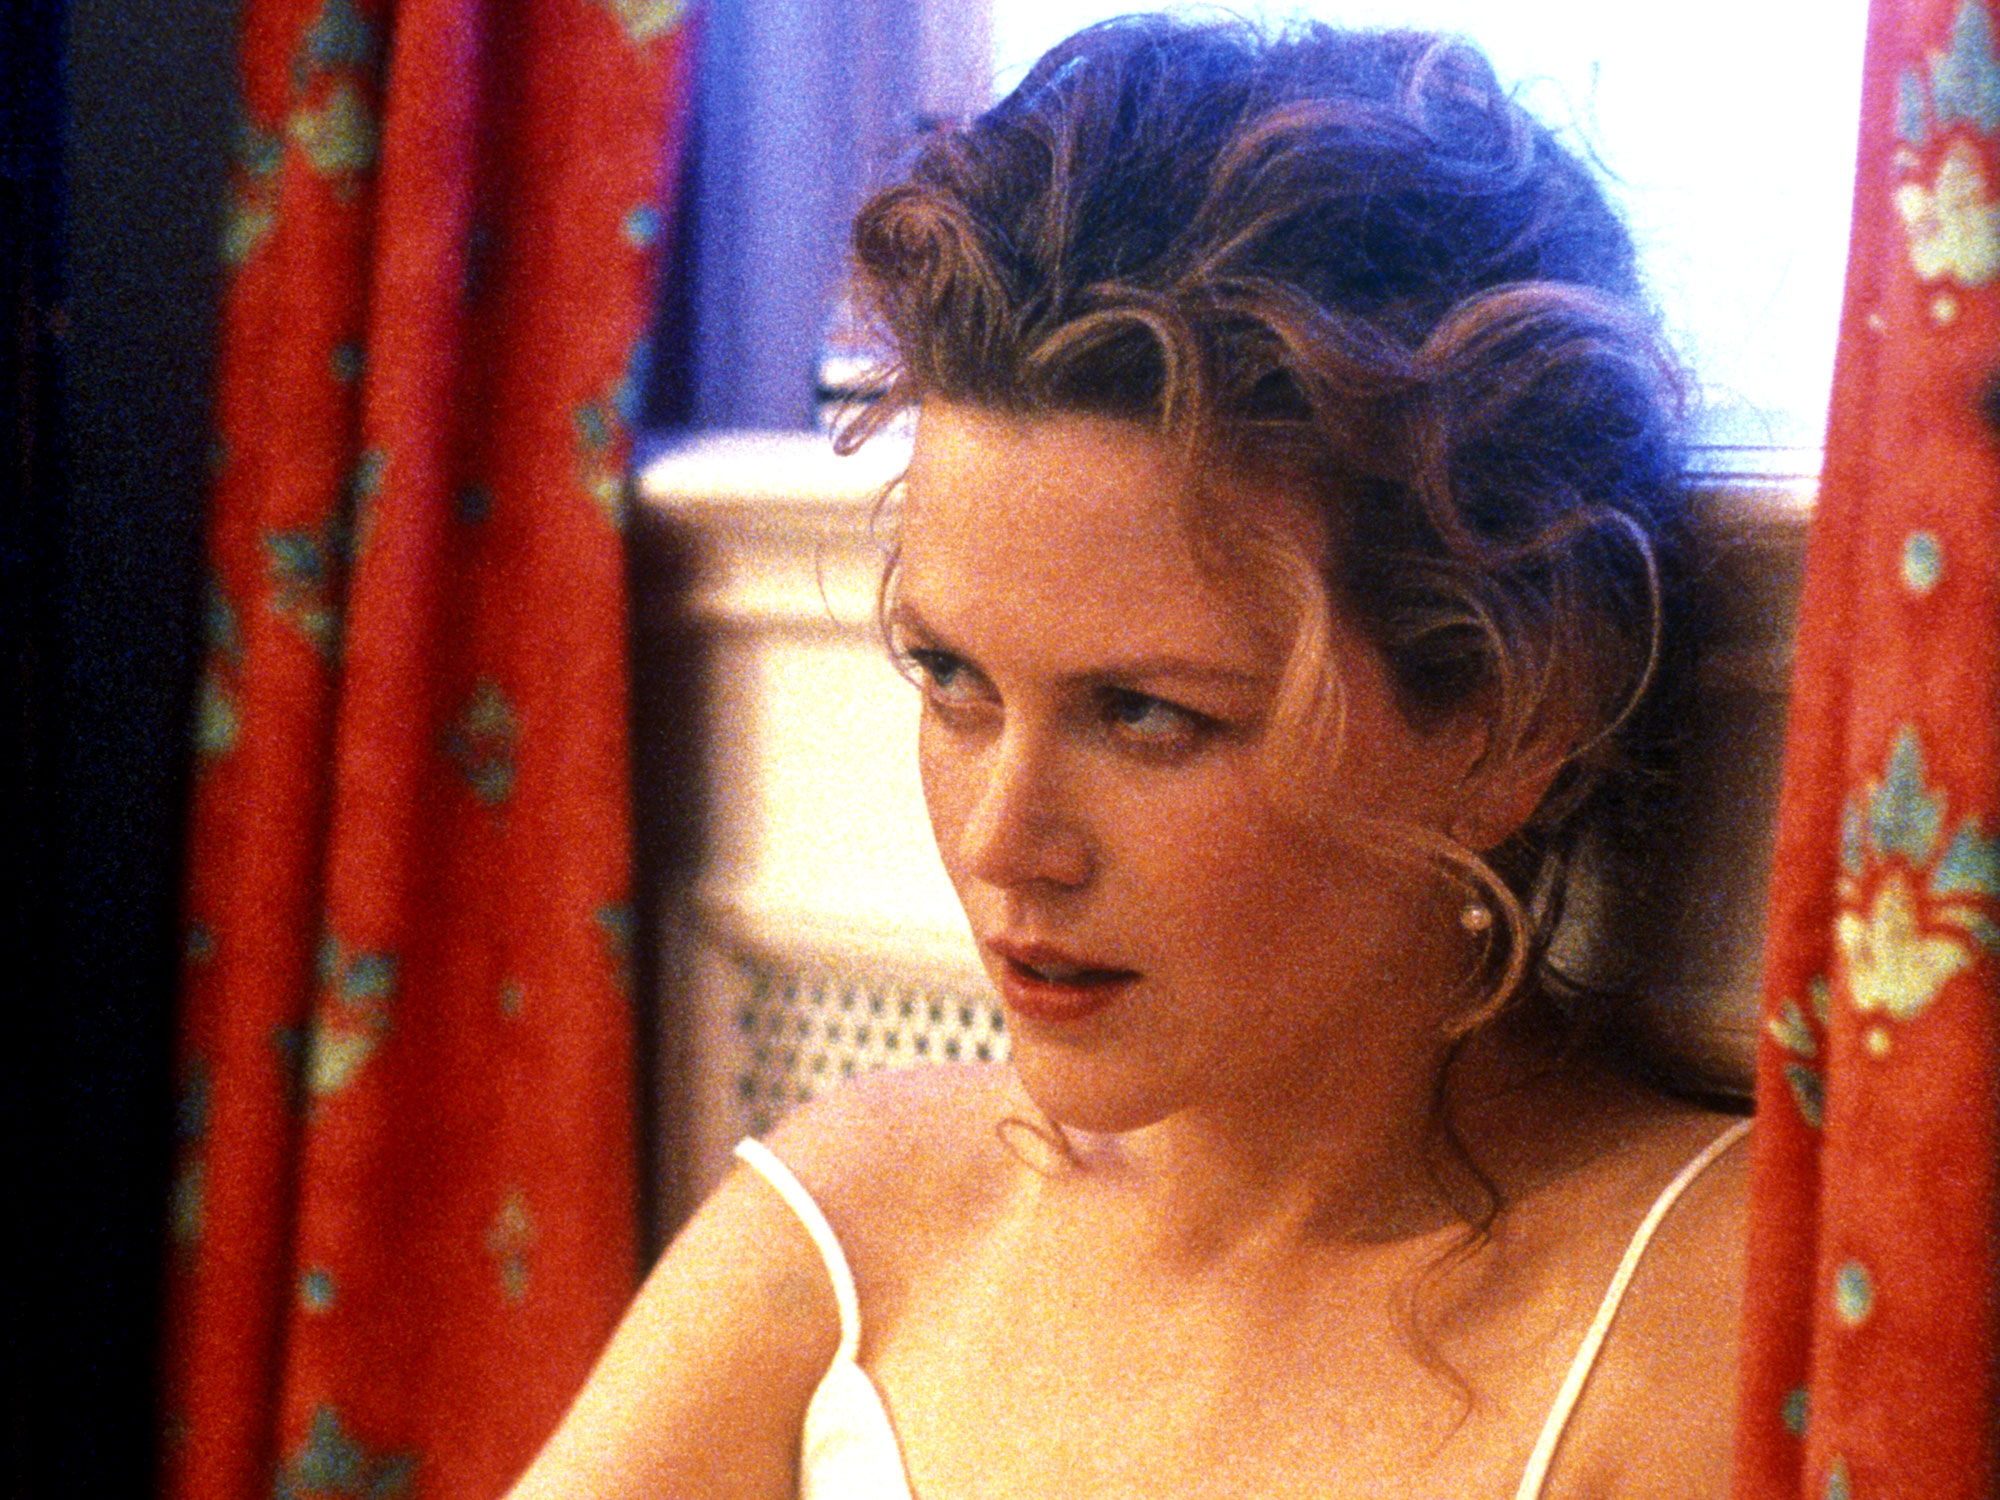 Eyes Wide Shut is returning to cinemas for its 20th anniversary